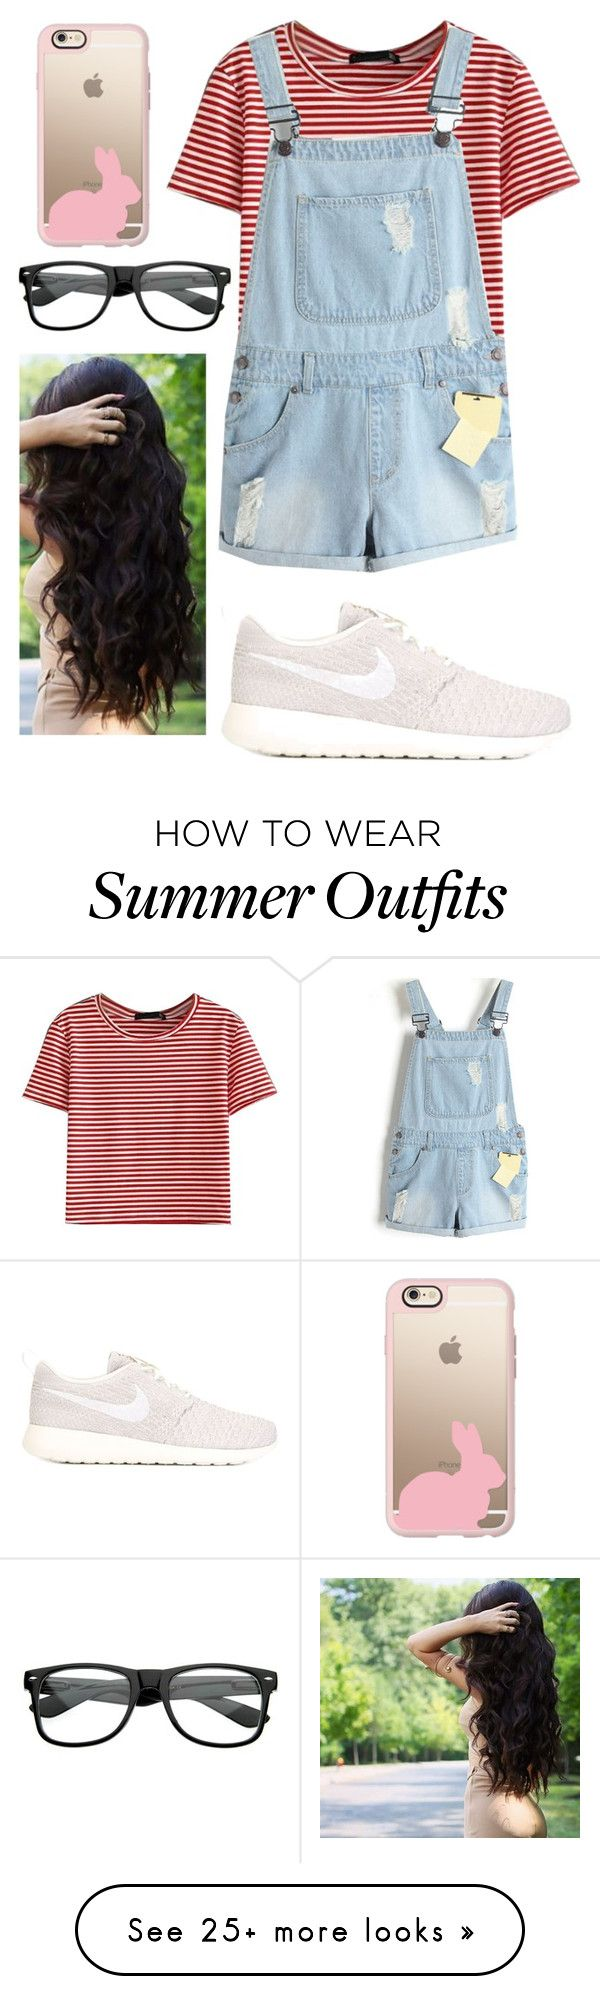 """""""Outfit #220. Teen summer look"""" by sarahstacey on Polyvore featuring WithChic, NIKE and Casetify"""